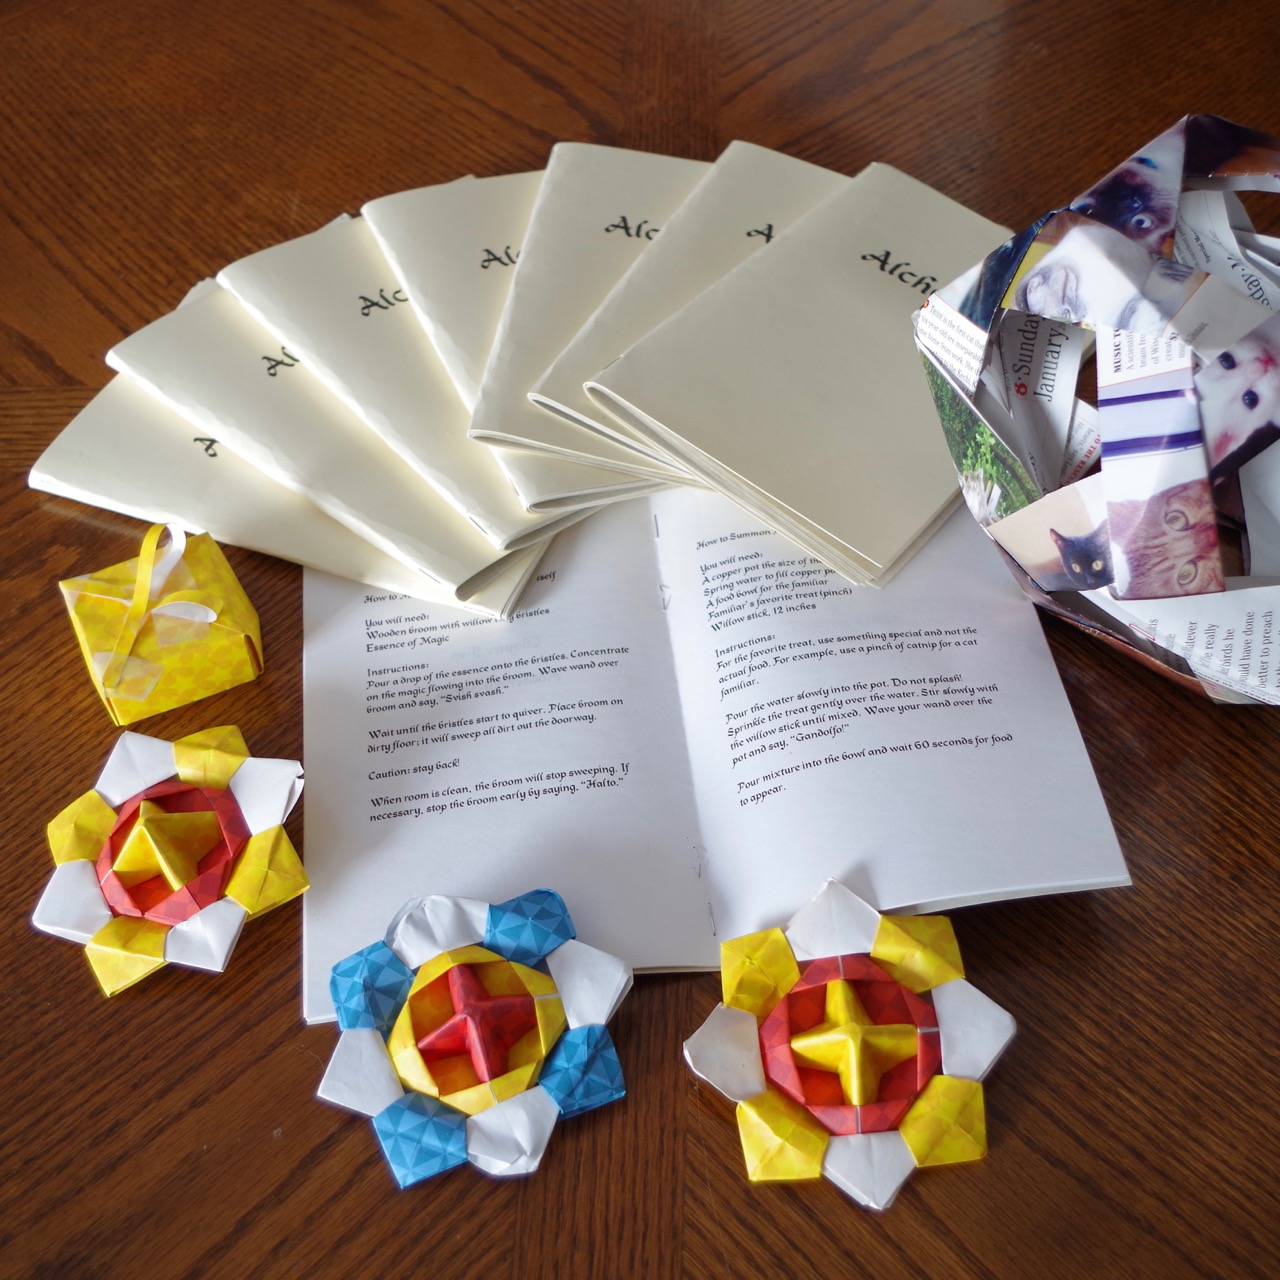 Benjamin's Origami Creations and Spellbook